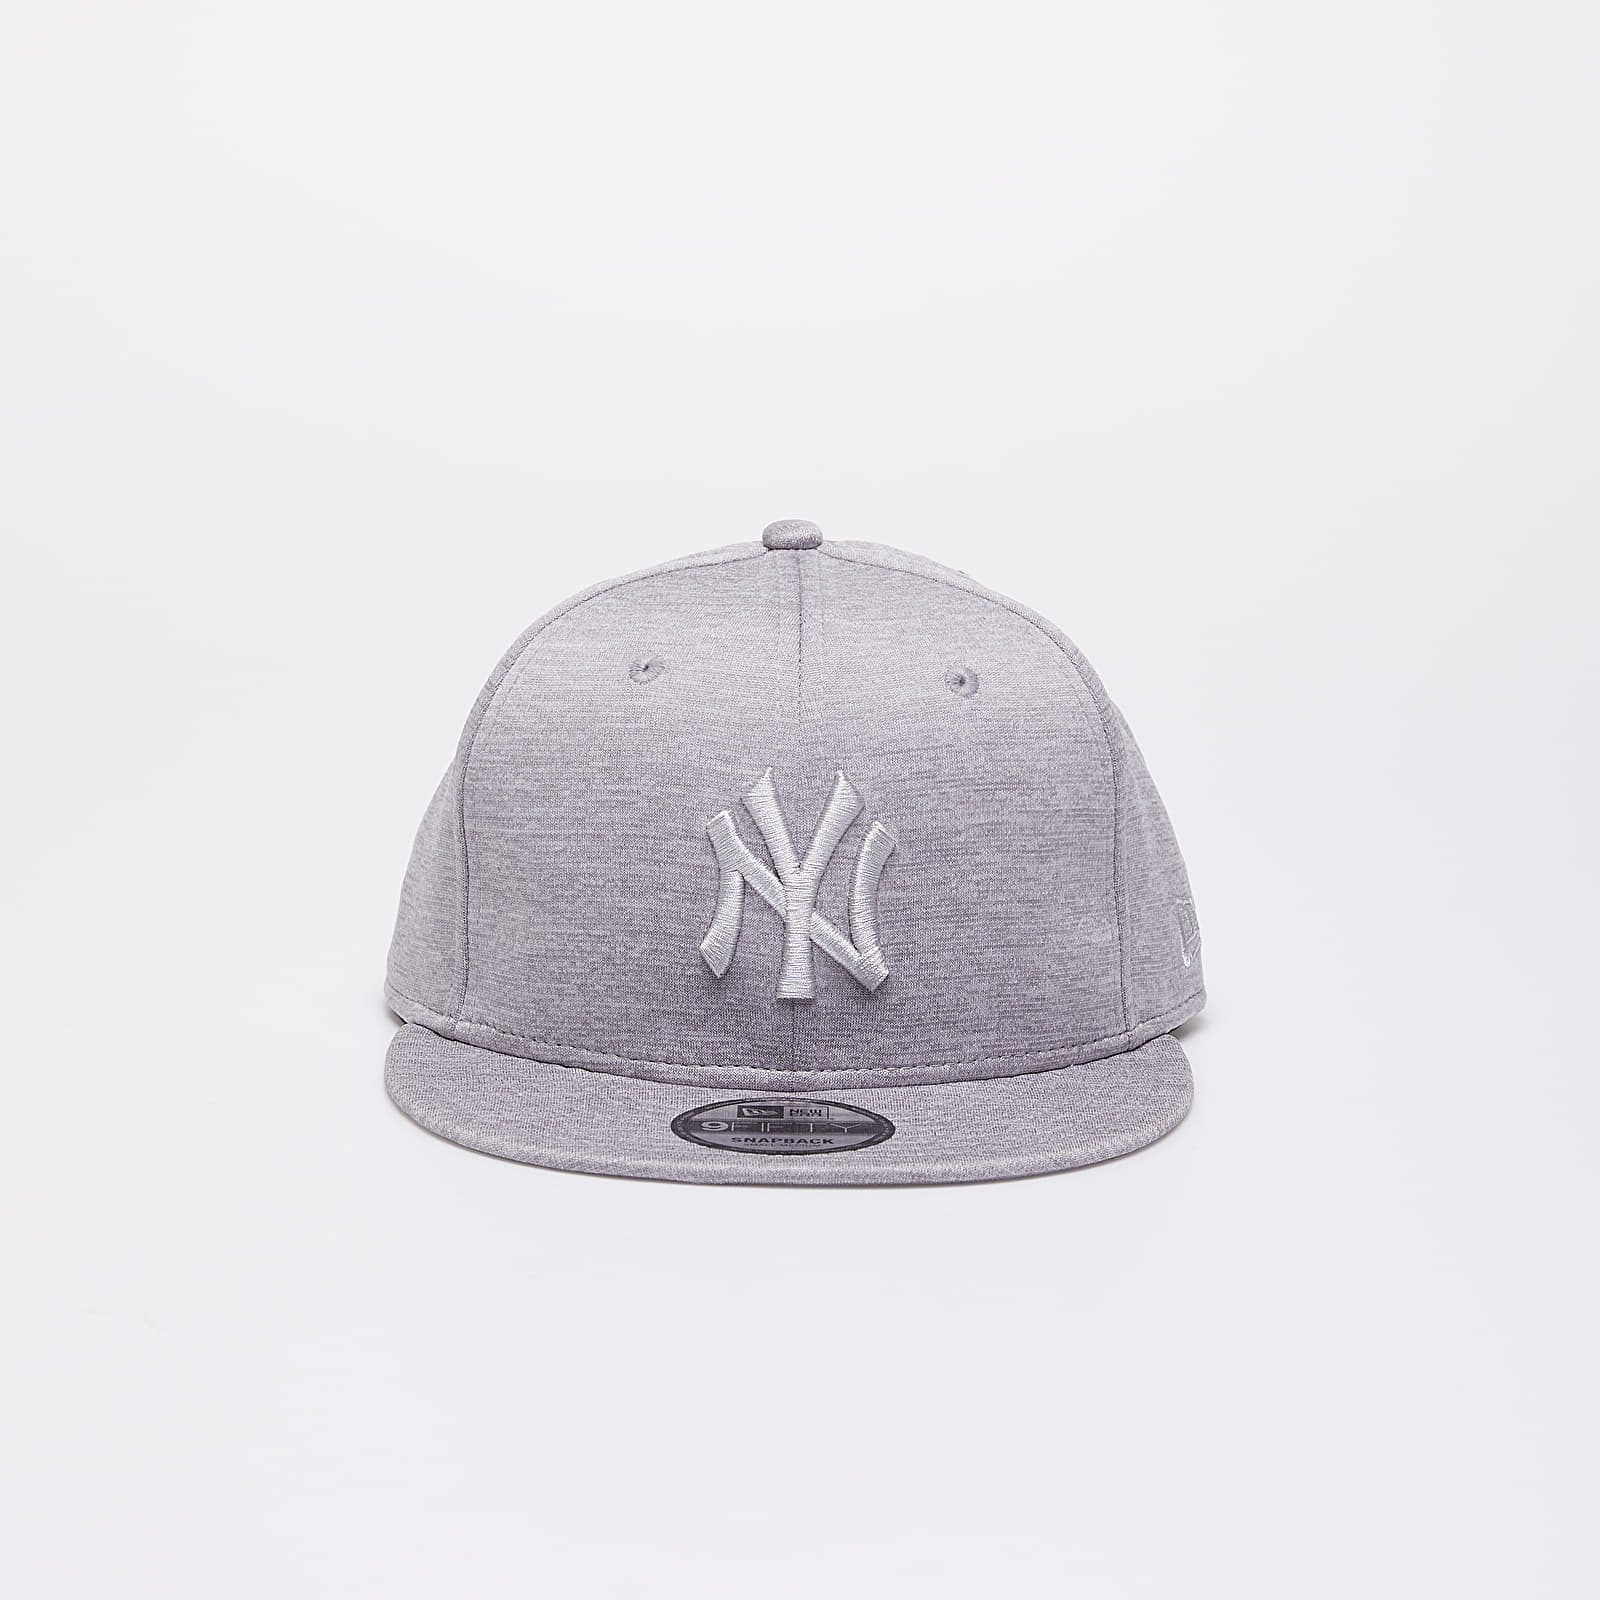 New Era 9Fifty MLB Shadow Tech New York Yankees Cap